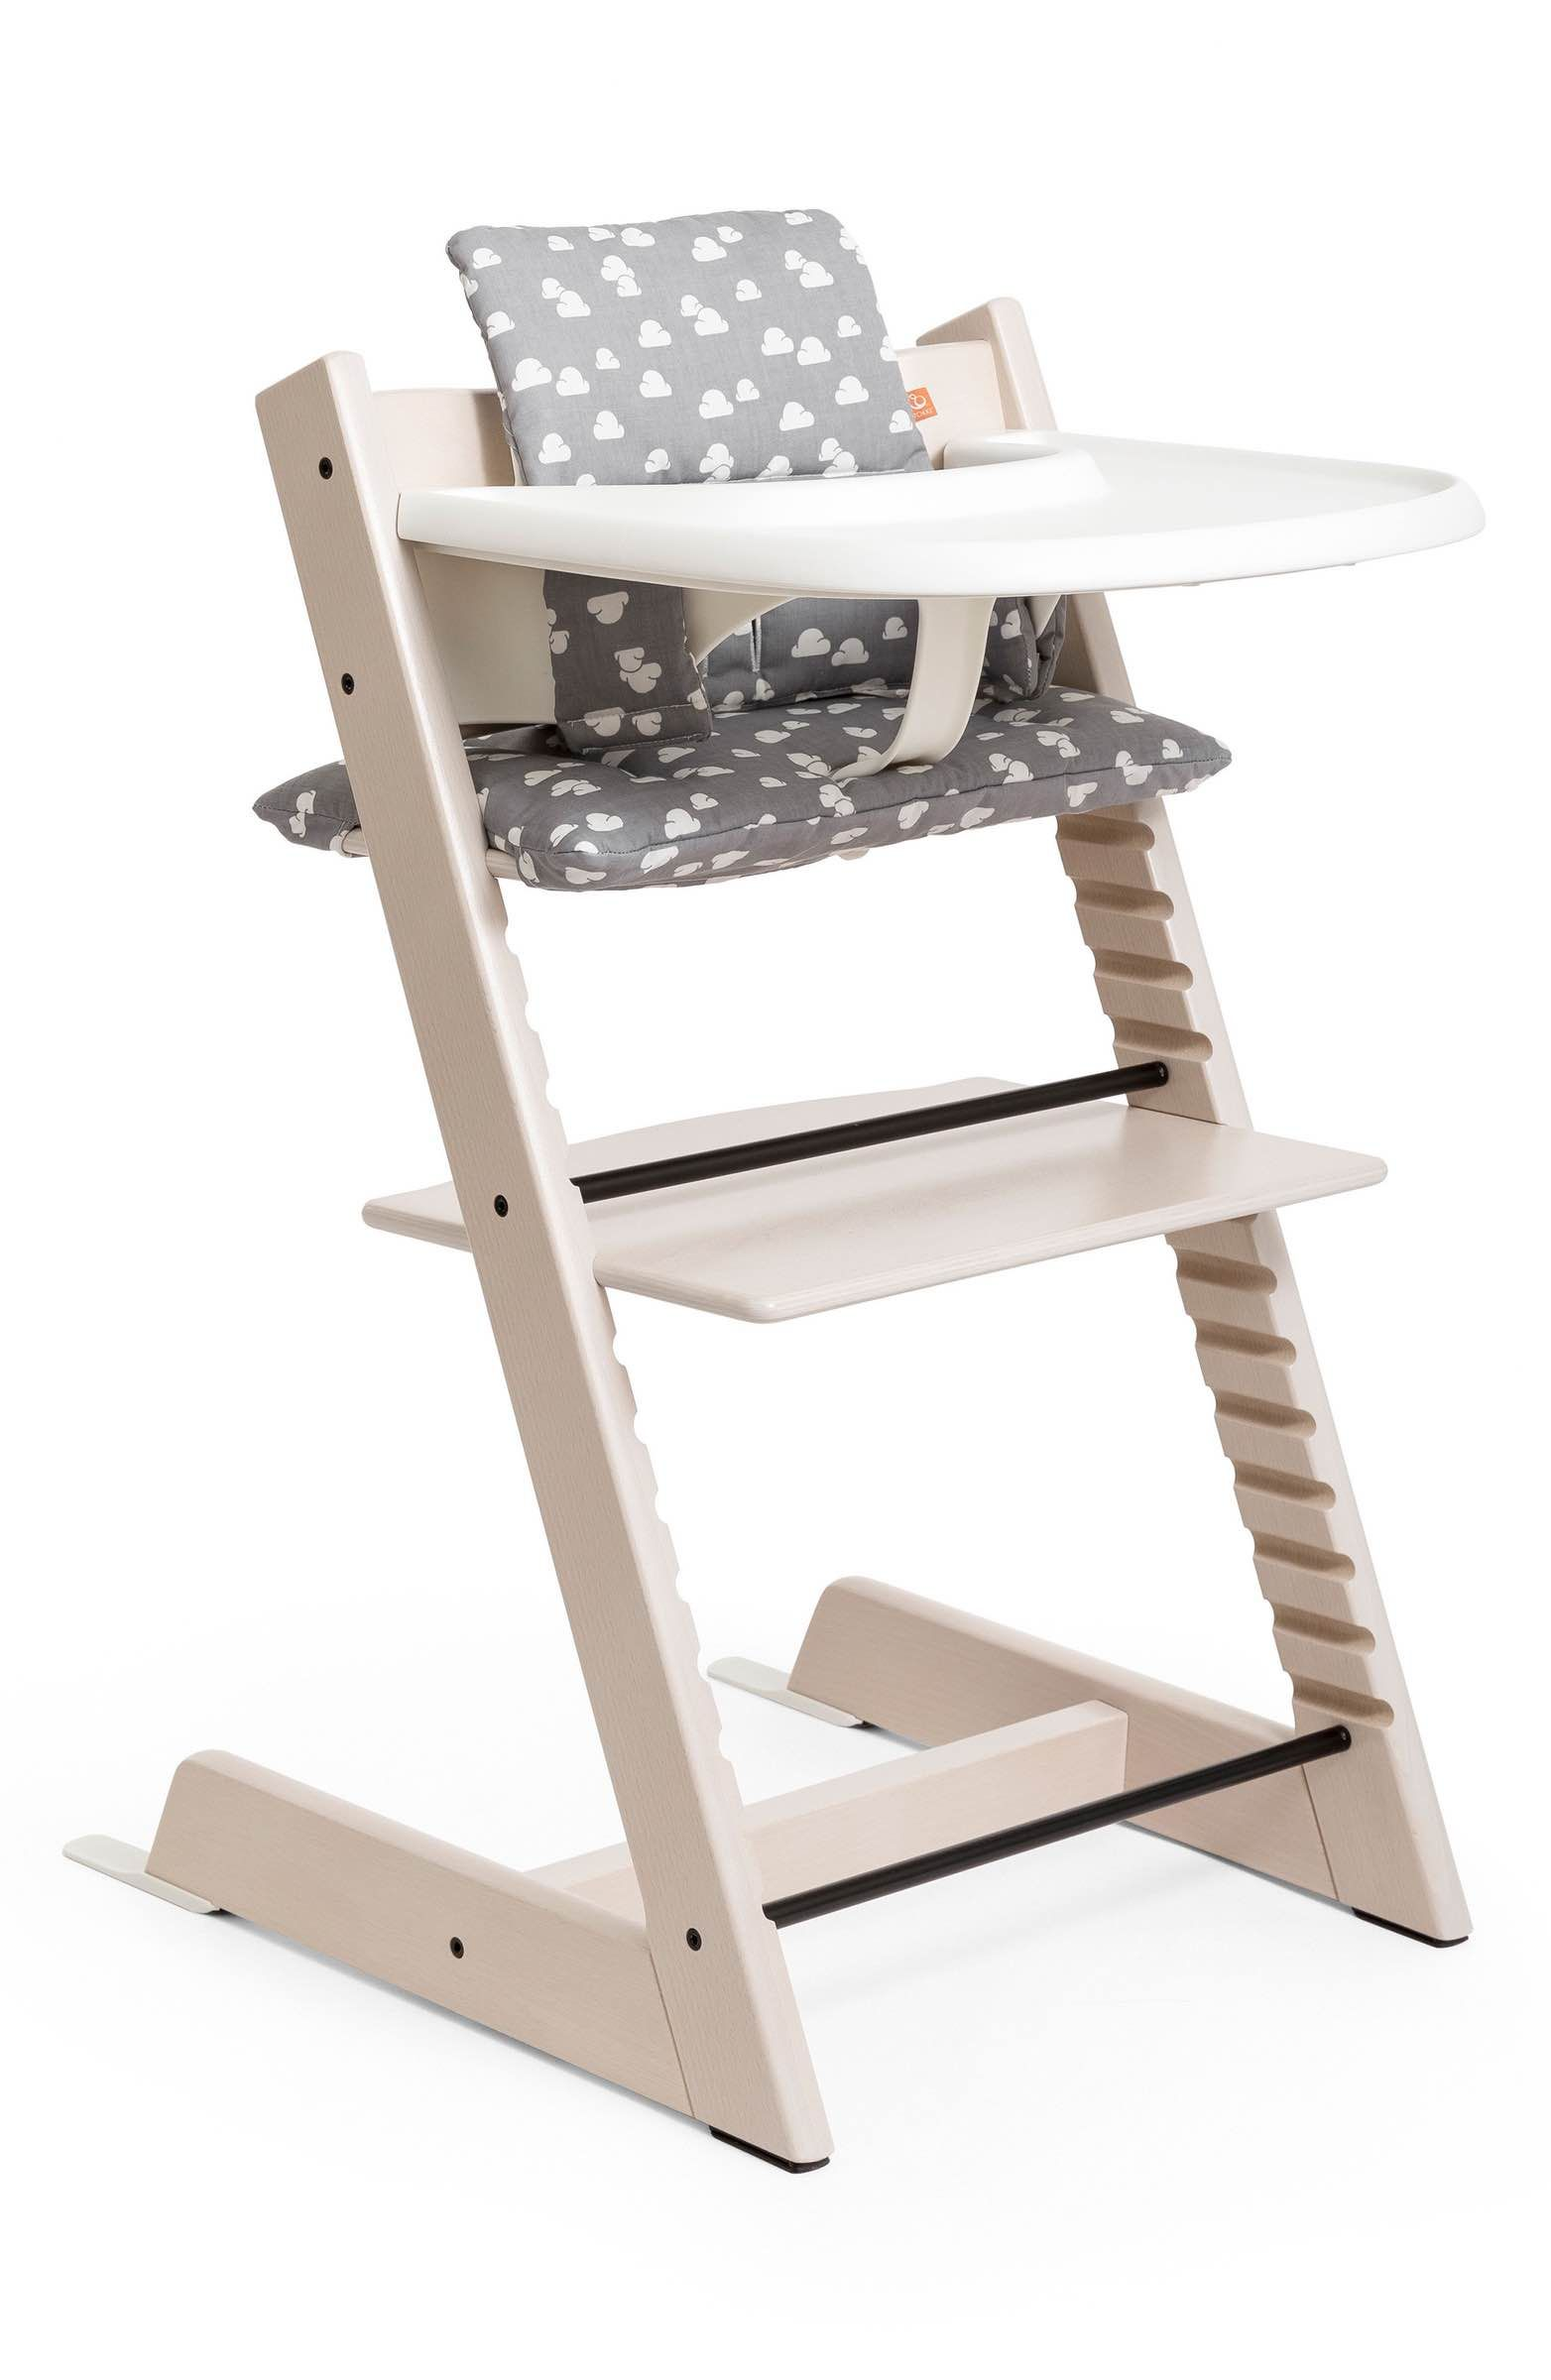 Main Image Stokke Tripp Trapp Chair Baby Set Cushion Tray Set Nordstrom Exclusive Wooden Baby High Chair Tripp Trapp Chair Stokke Tripp Trapp